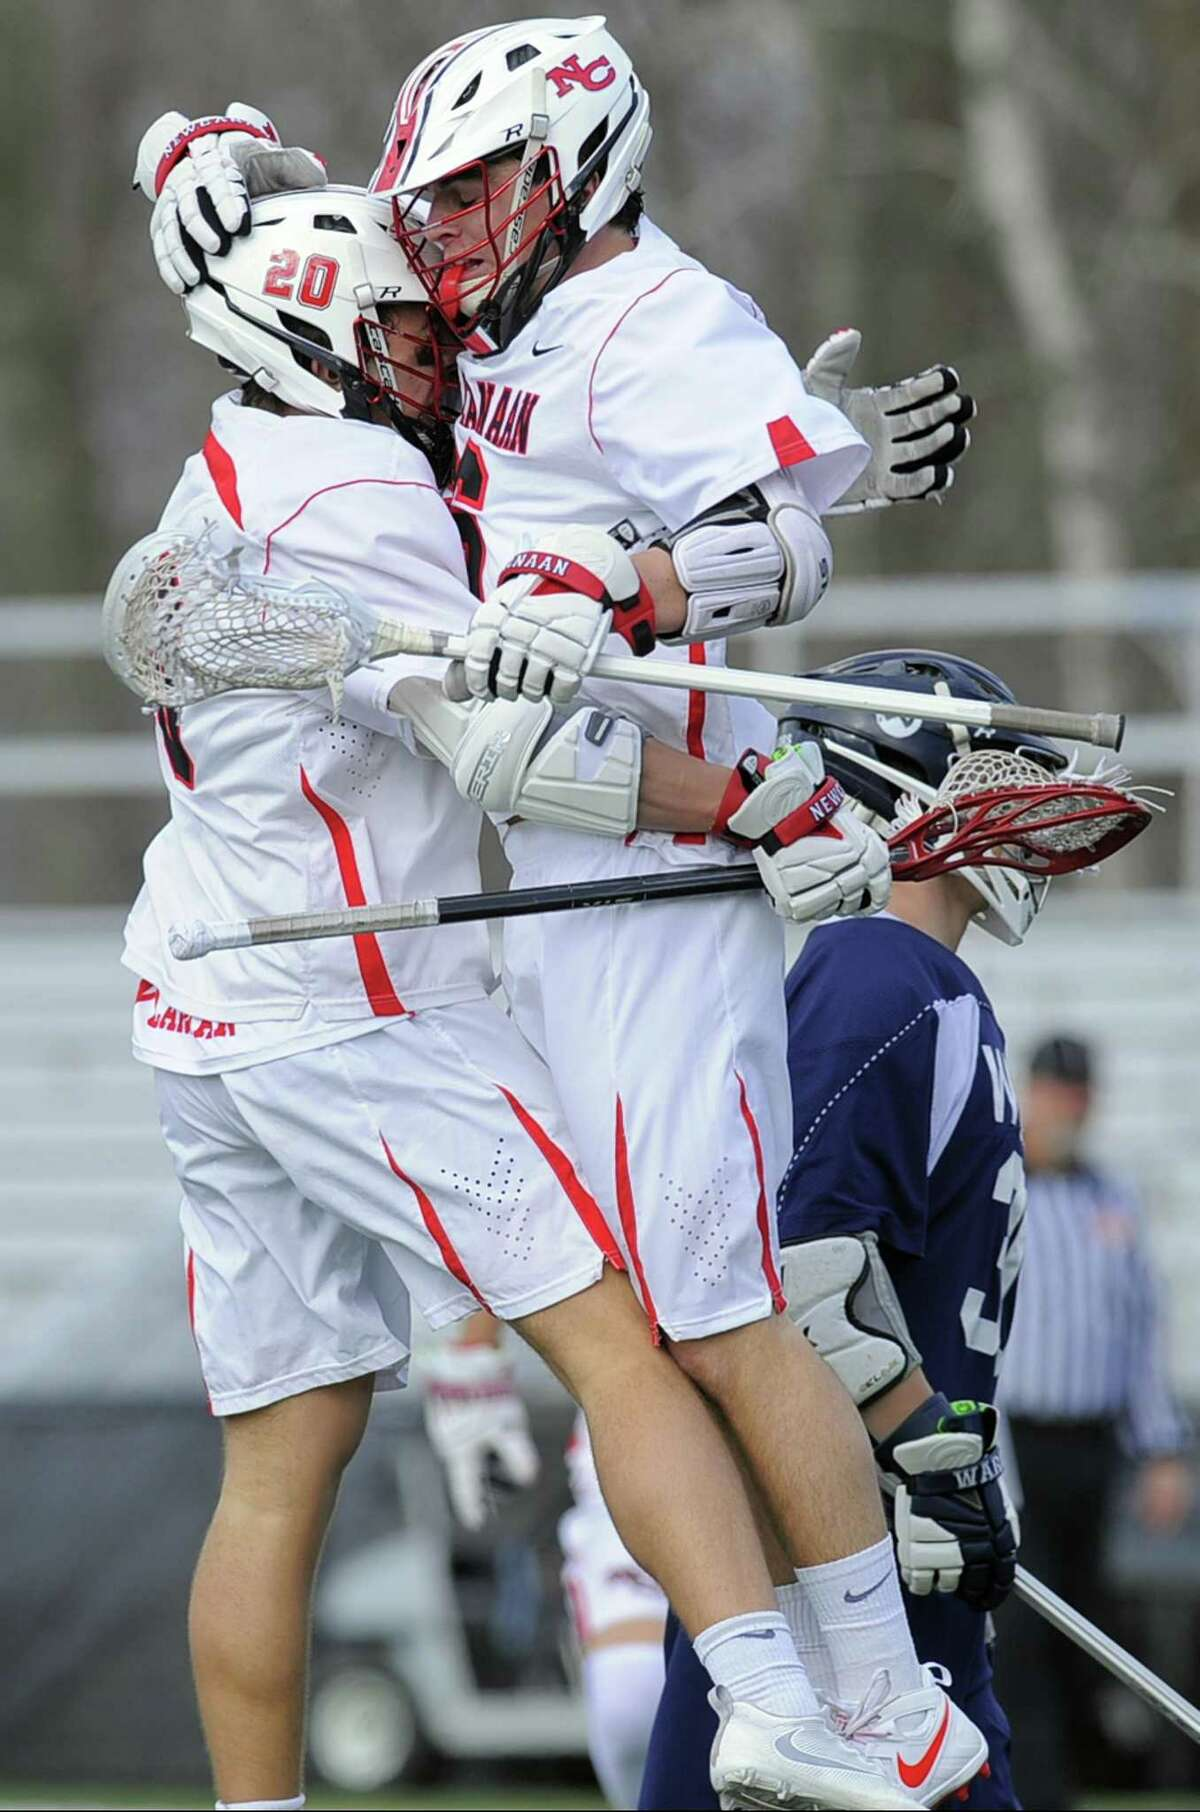 New Canaan's Quintin O'Connell celebrates with his brother Ryan O'Connell after Ryan scored in the first half against Wilton on Wednesday at Dunning Field.